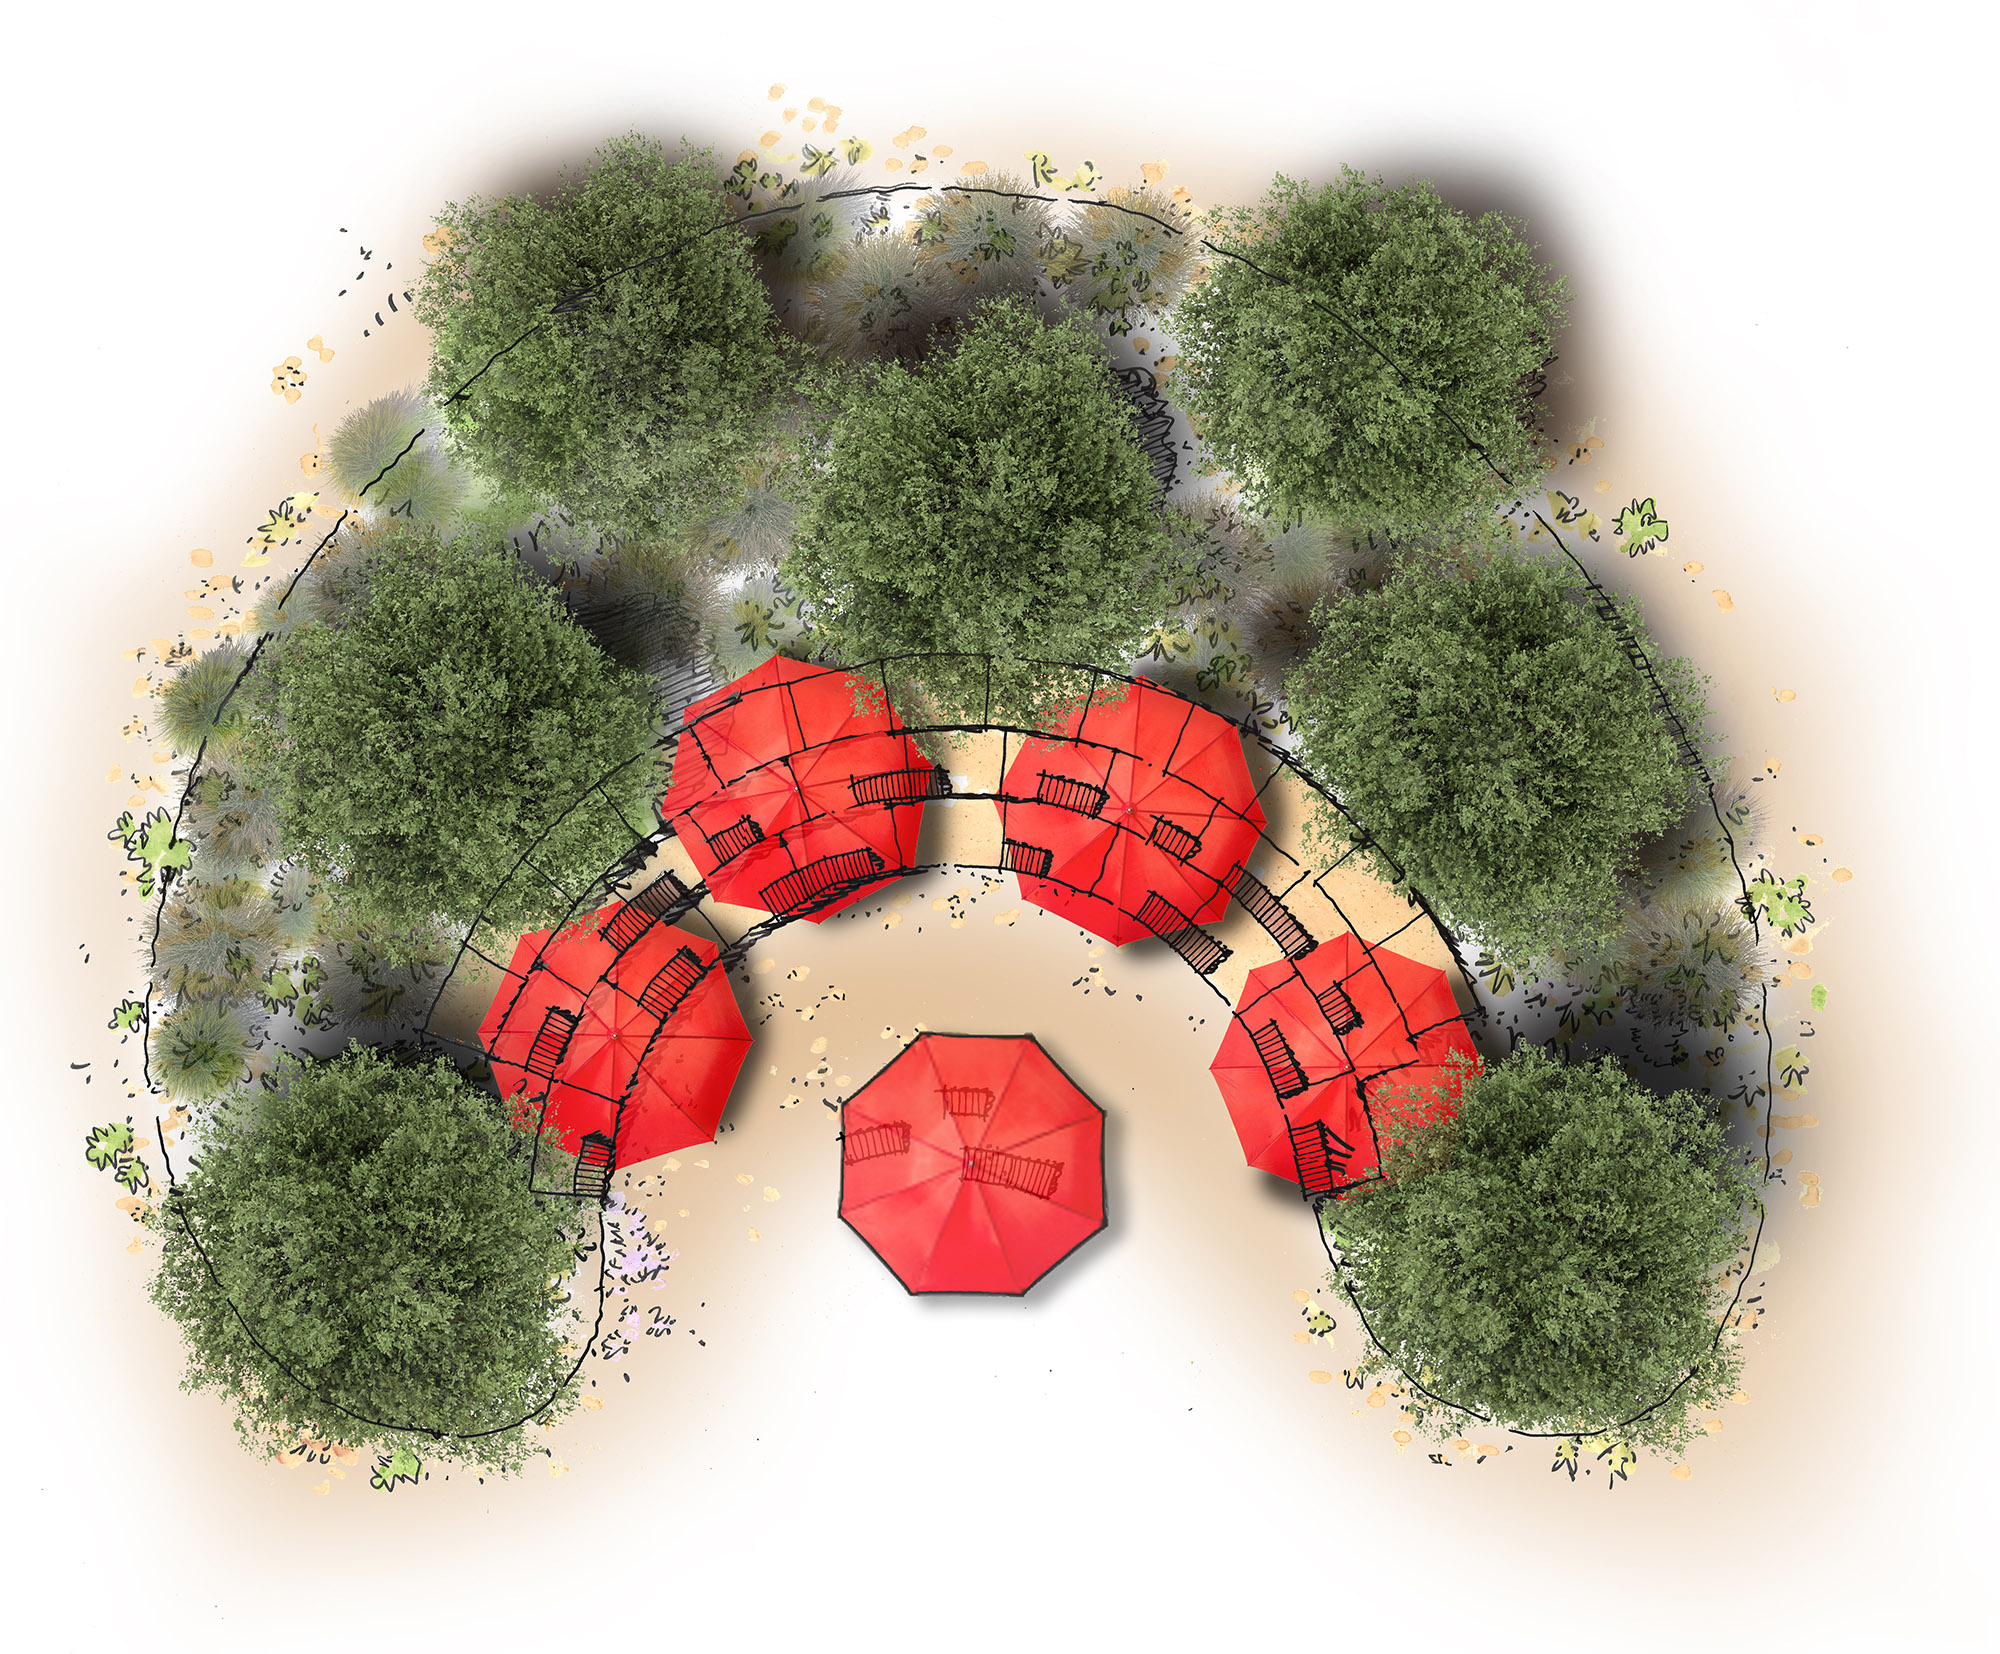 Nature Conserv Seating Area Plan View.jpg